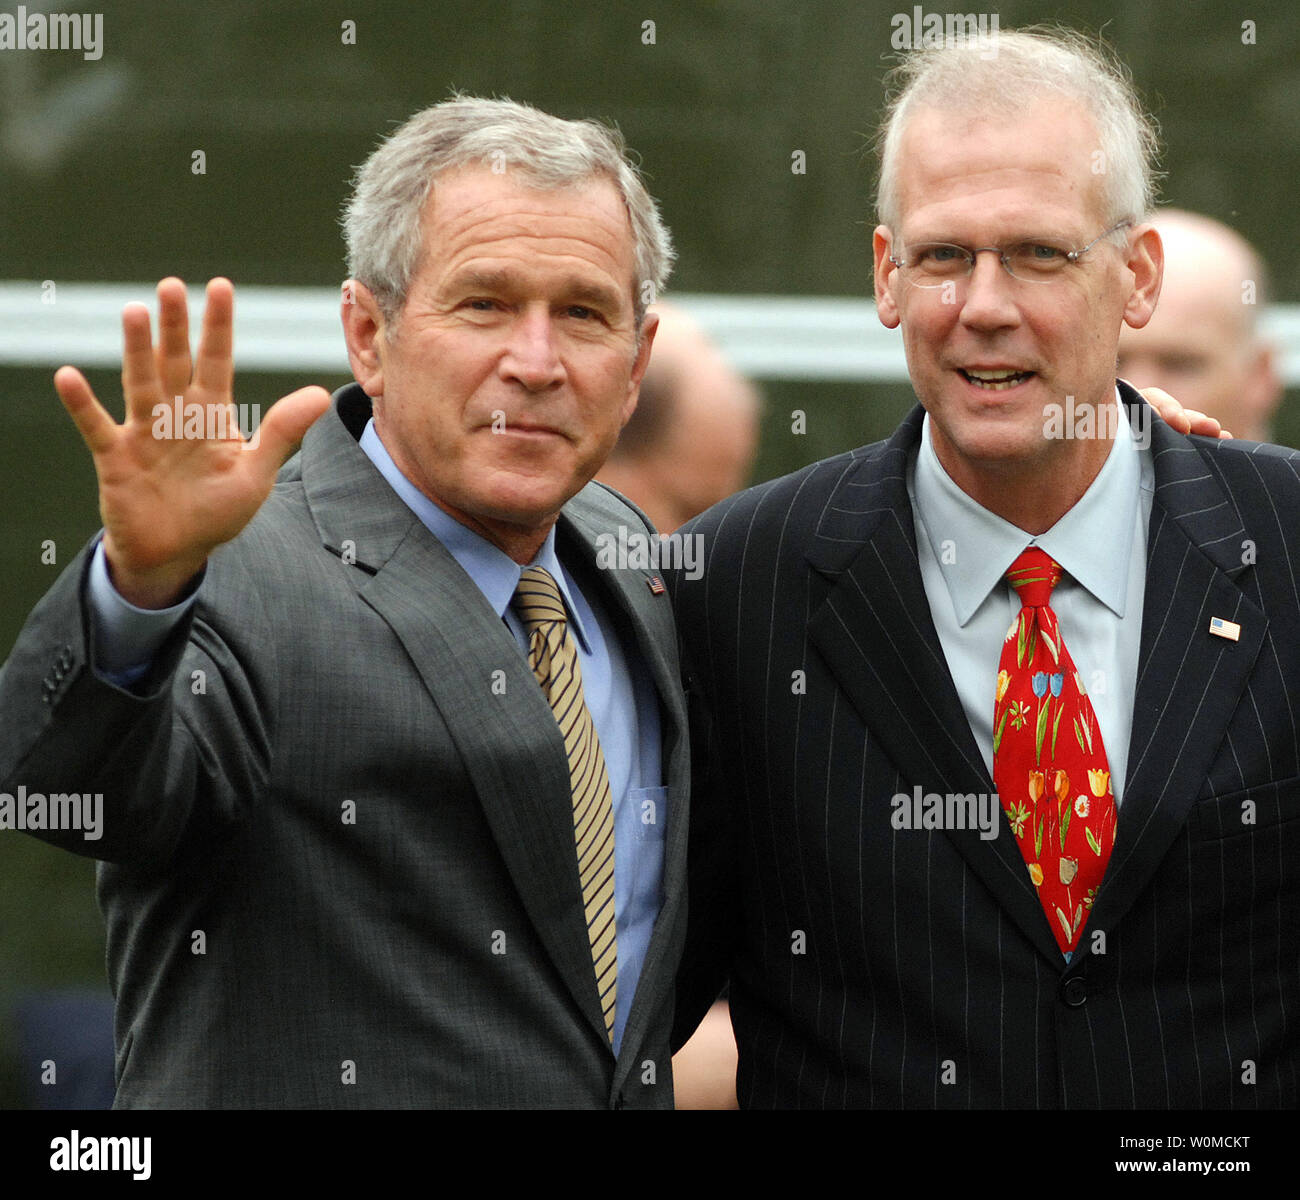 Former White House Press Secretary Tony Snow R Pictured With U S President George W Bush At The White House In Washington On September 14 2007 Snow S Last Day As Press Secretary Died